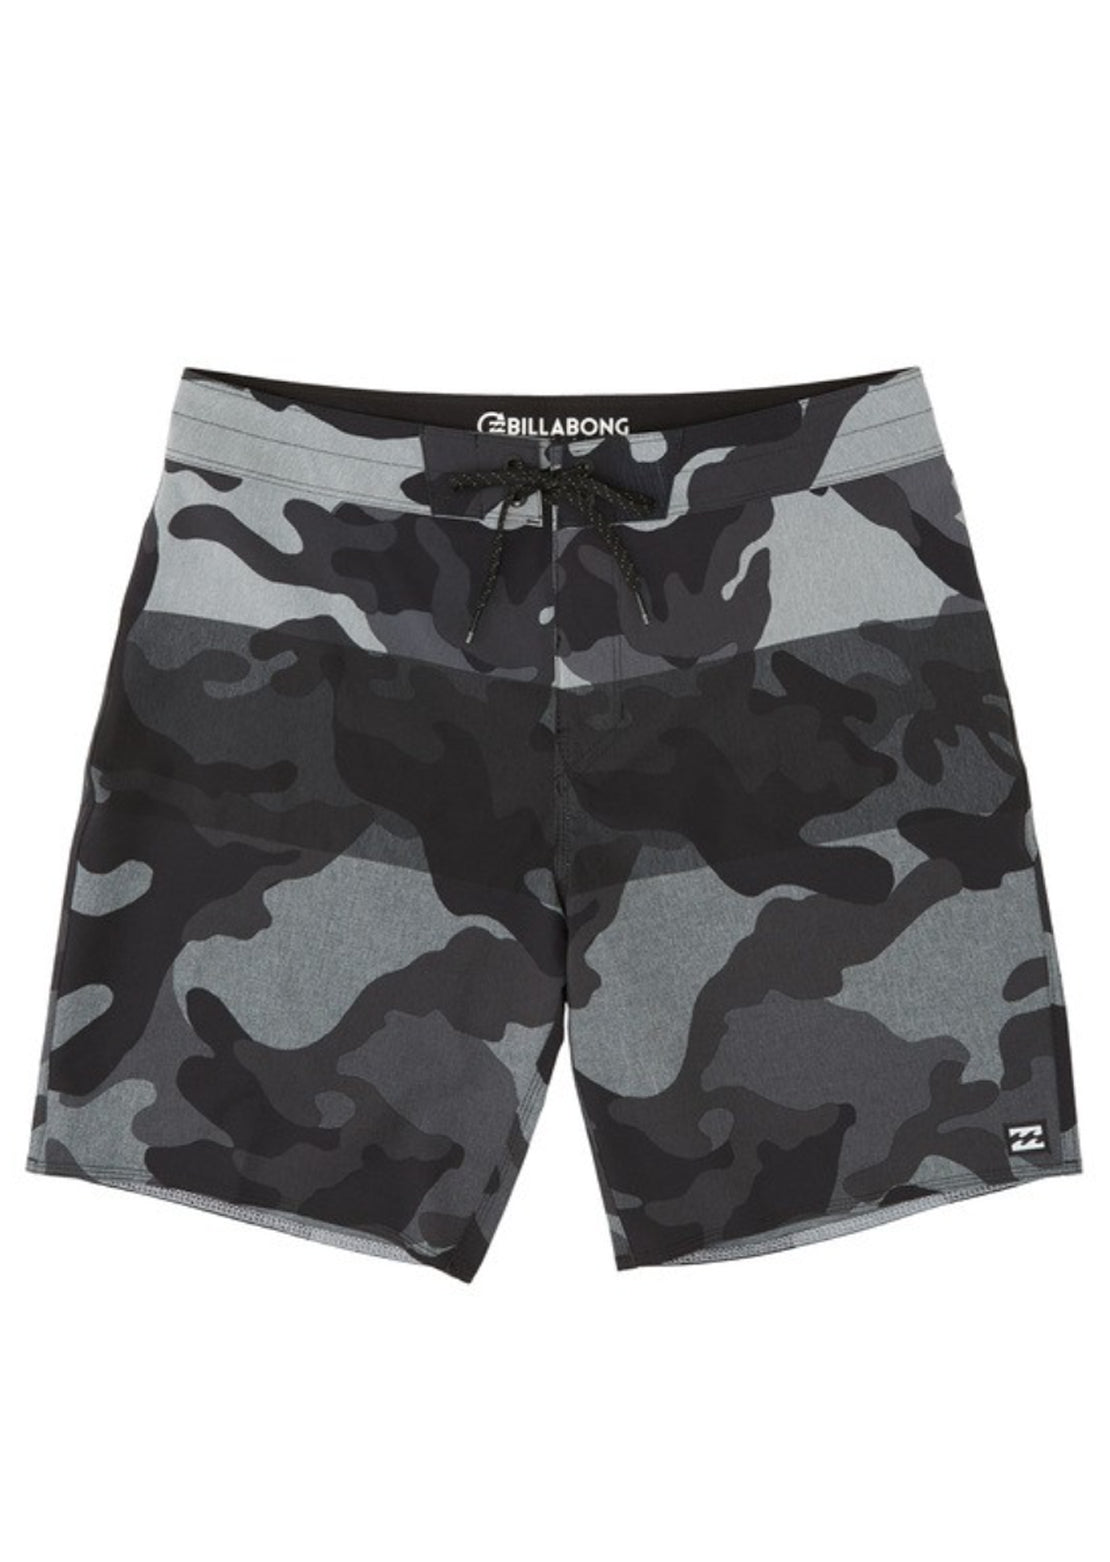 Billabong Men's Tribong Airlite Boardshorts Char Camo